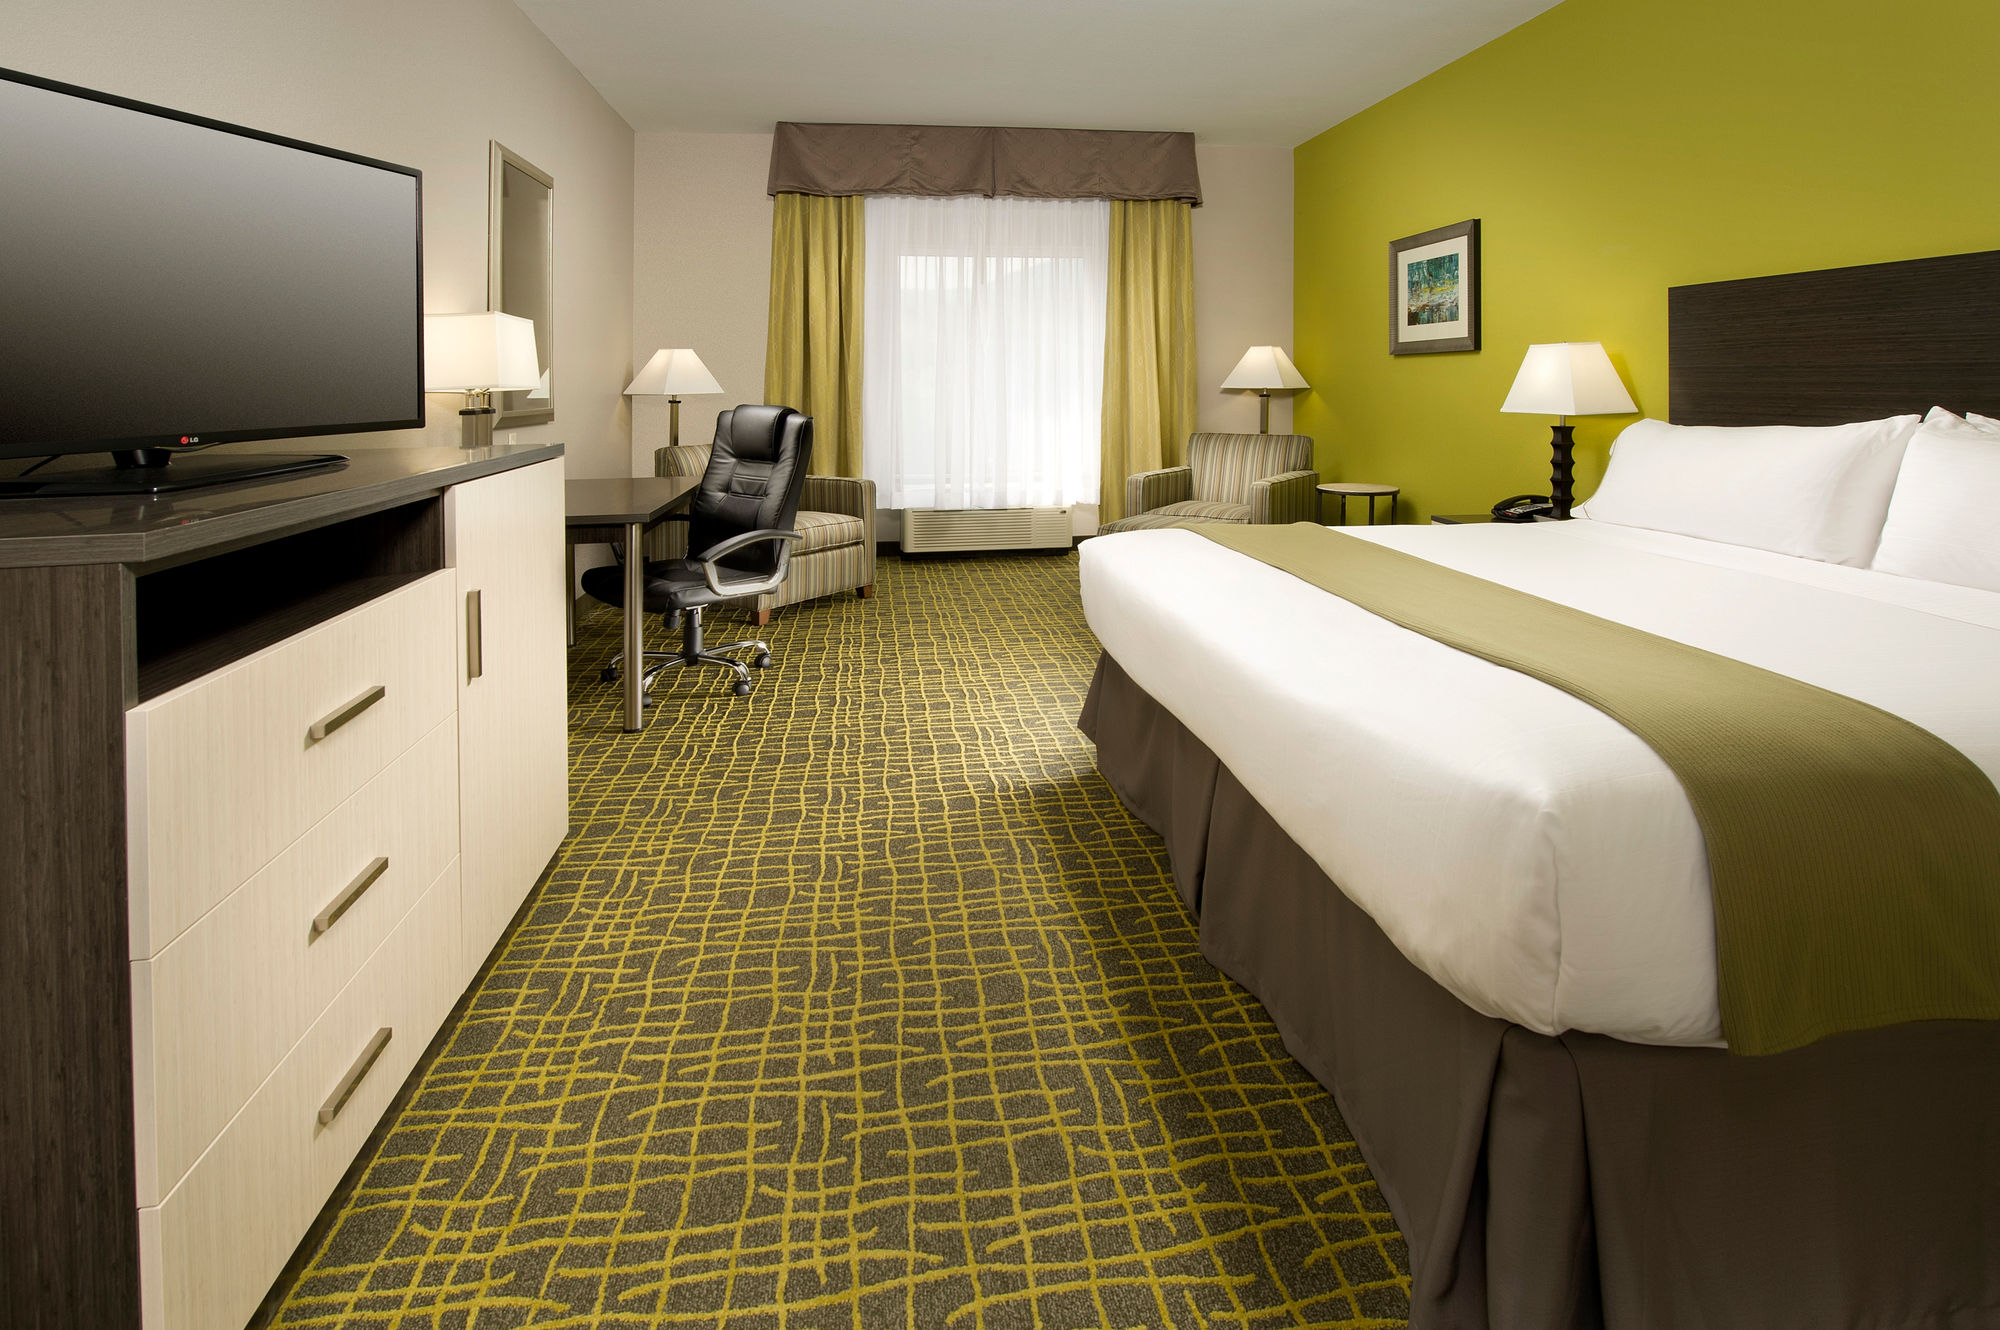 Holiday Inn Express & Suites, Caryville in Caryville, TN